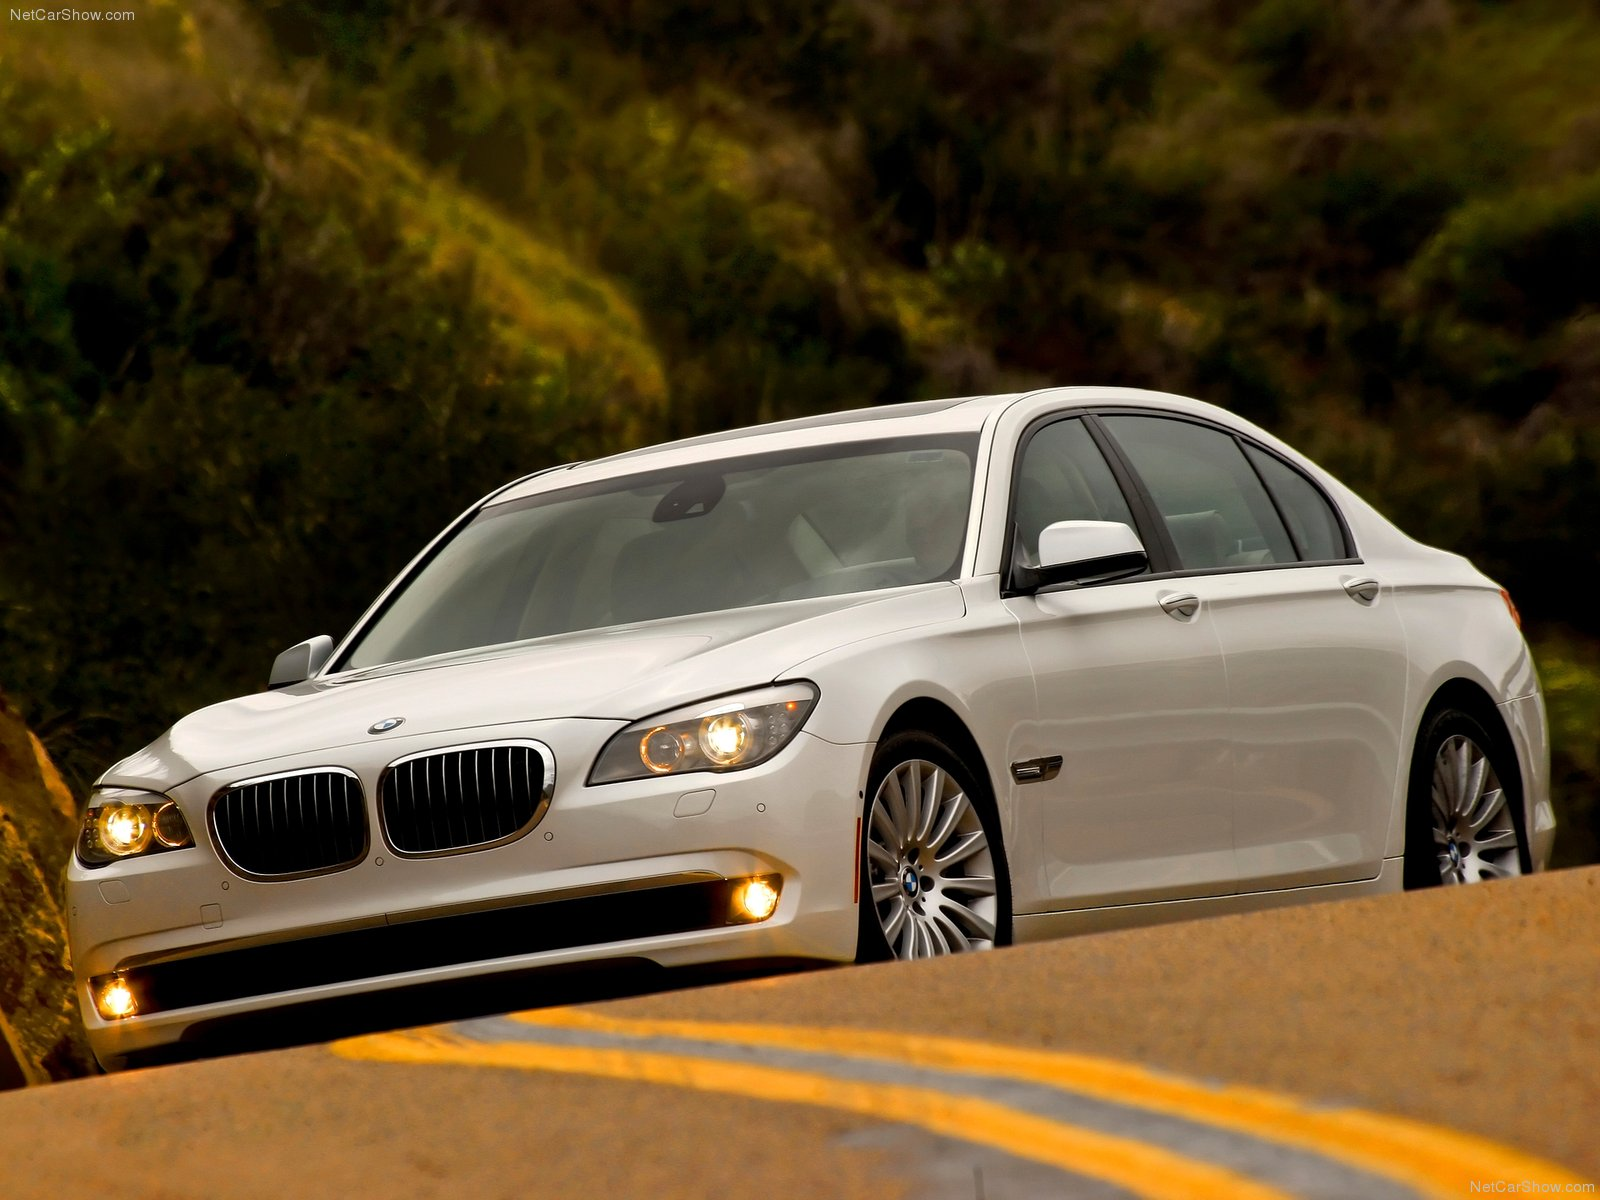 BMW 7-series F01 F02 picture # 81184 | BMW photo gallery ...